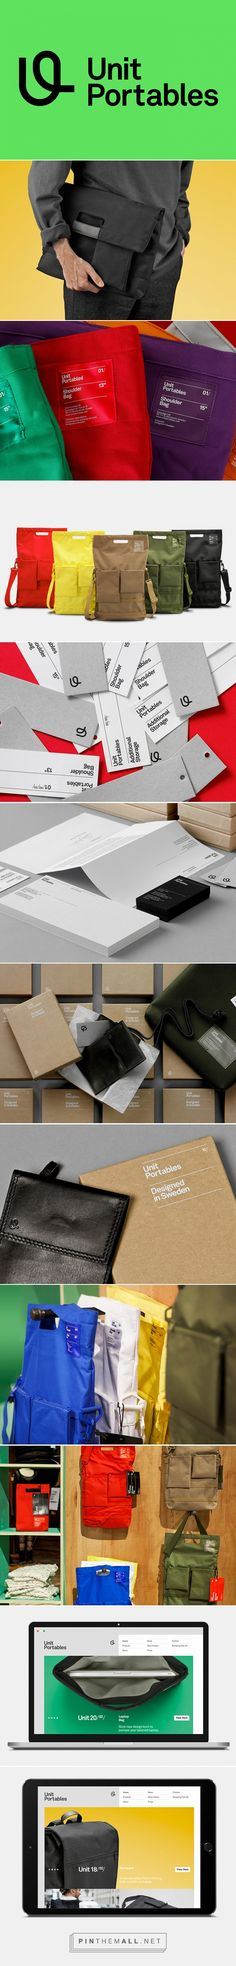 Unit Portables | AesseVisualJournal